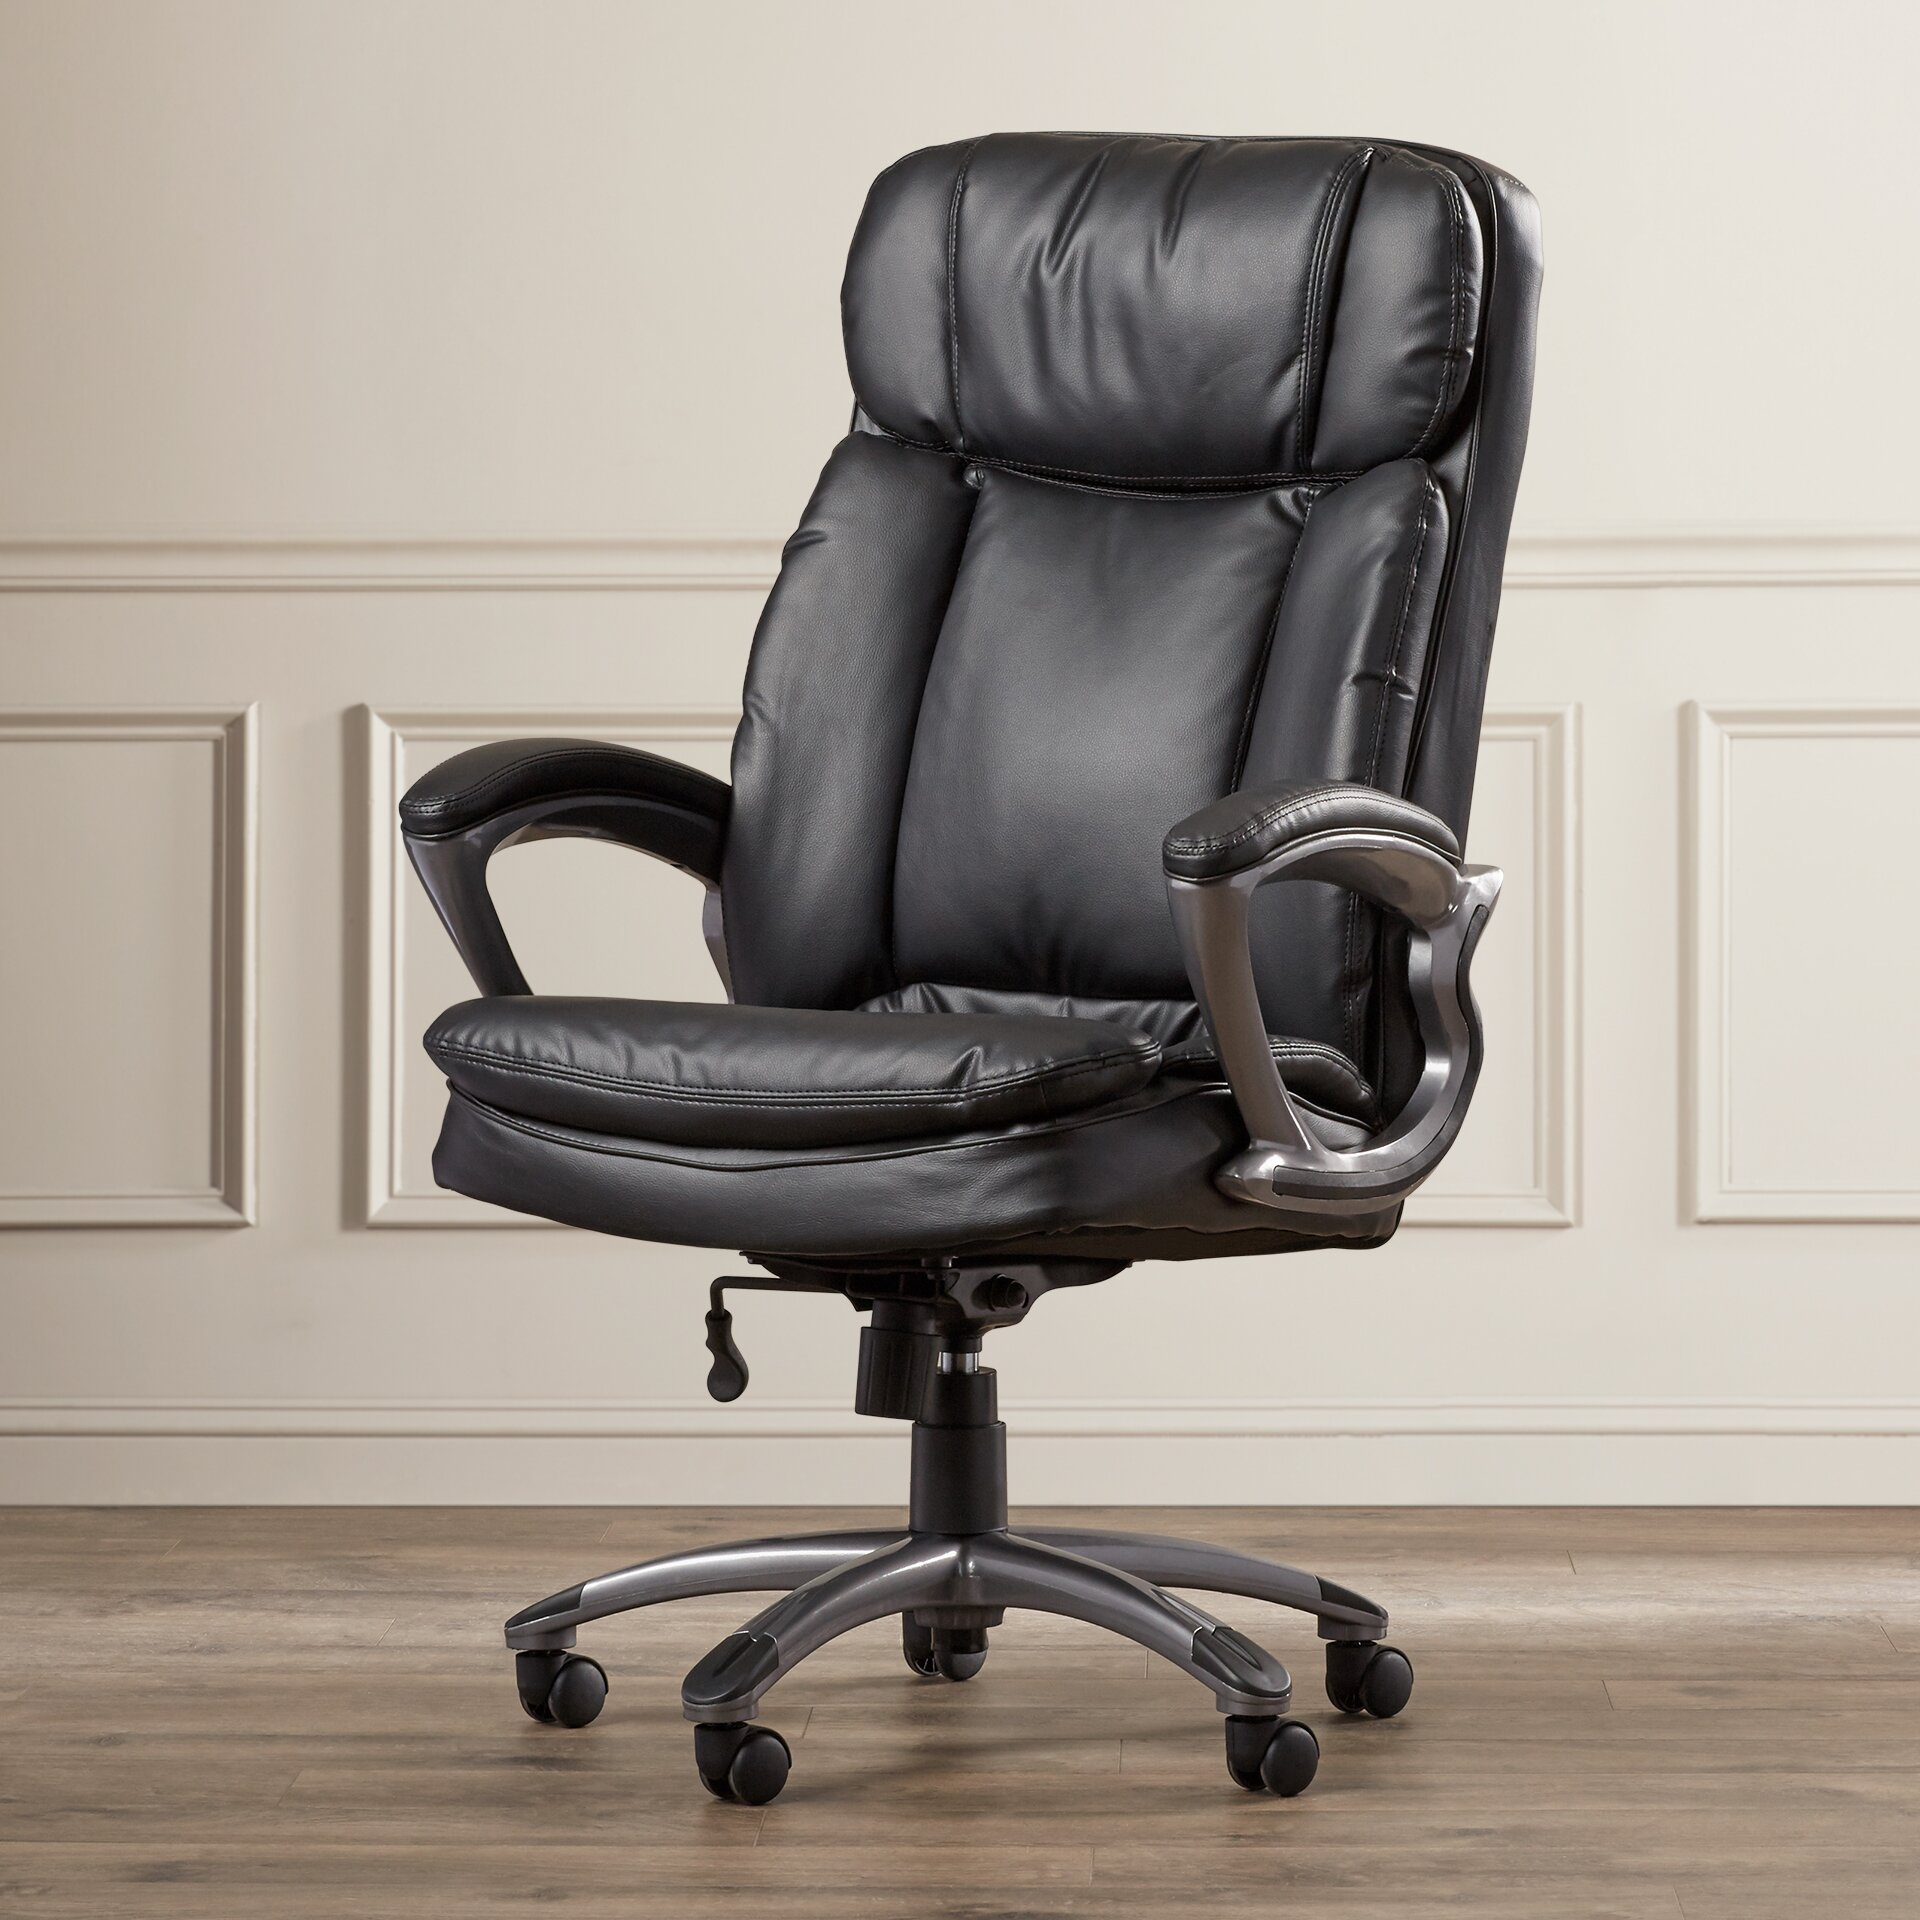 serta at home serenity high back manager office chair. serta at